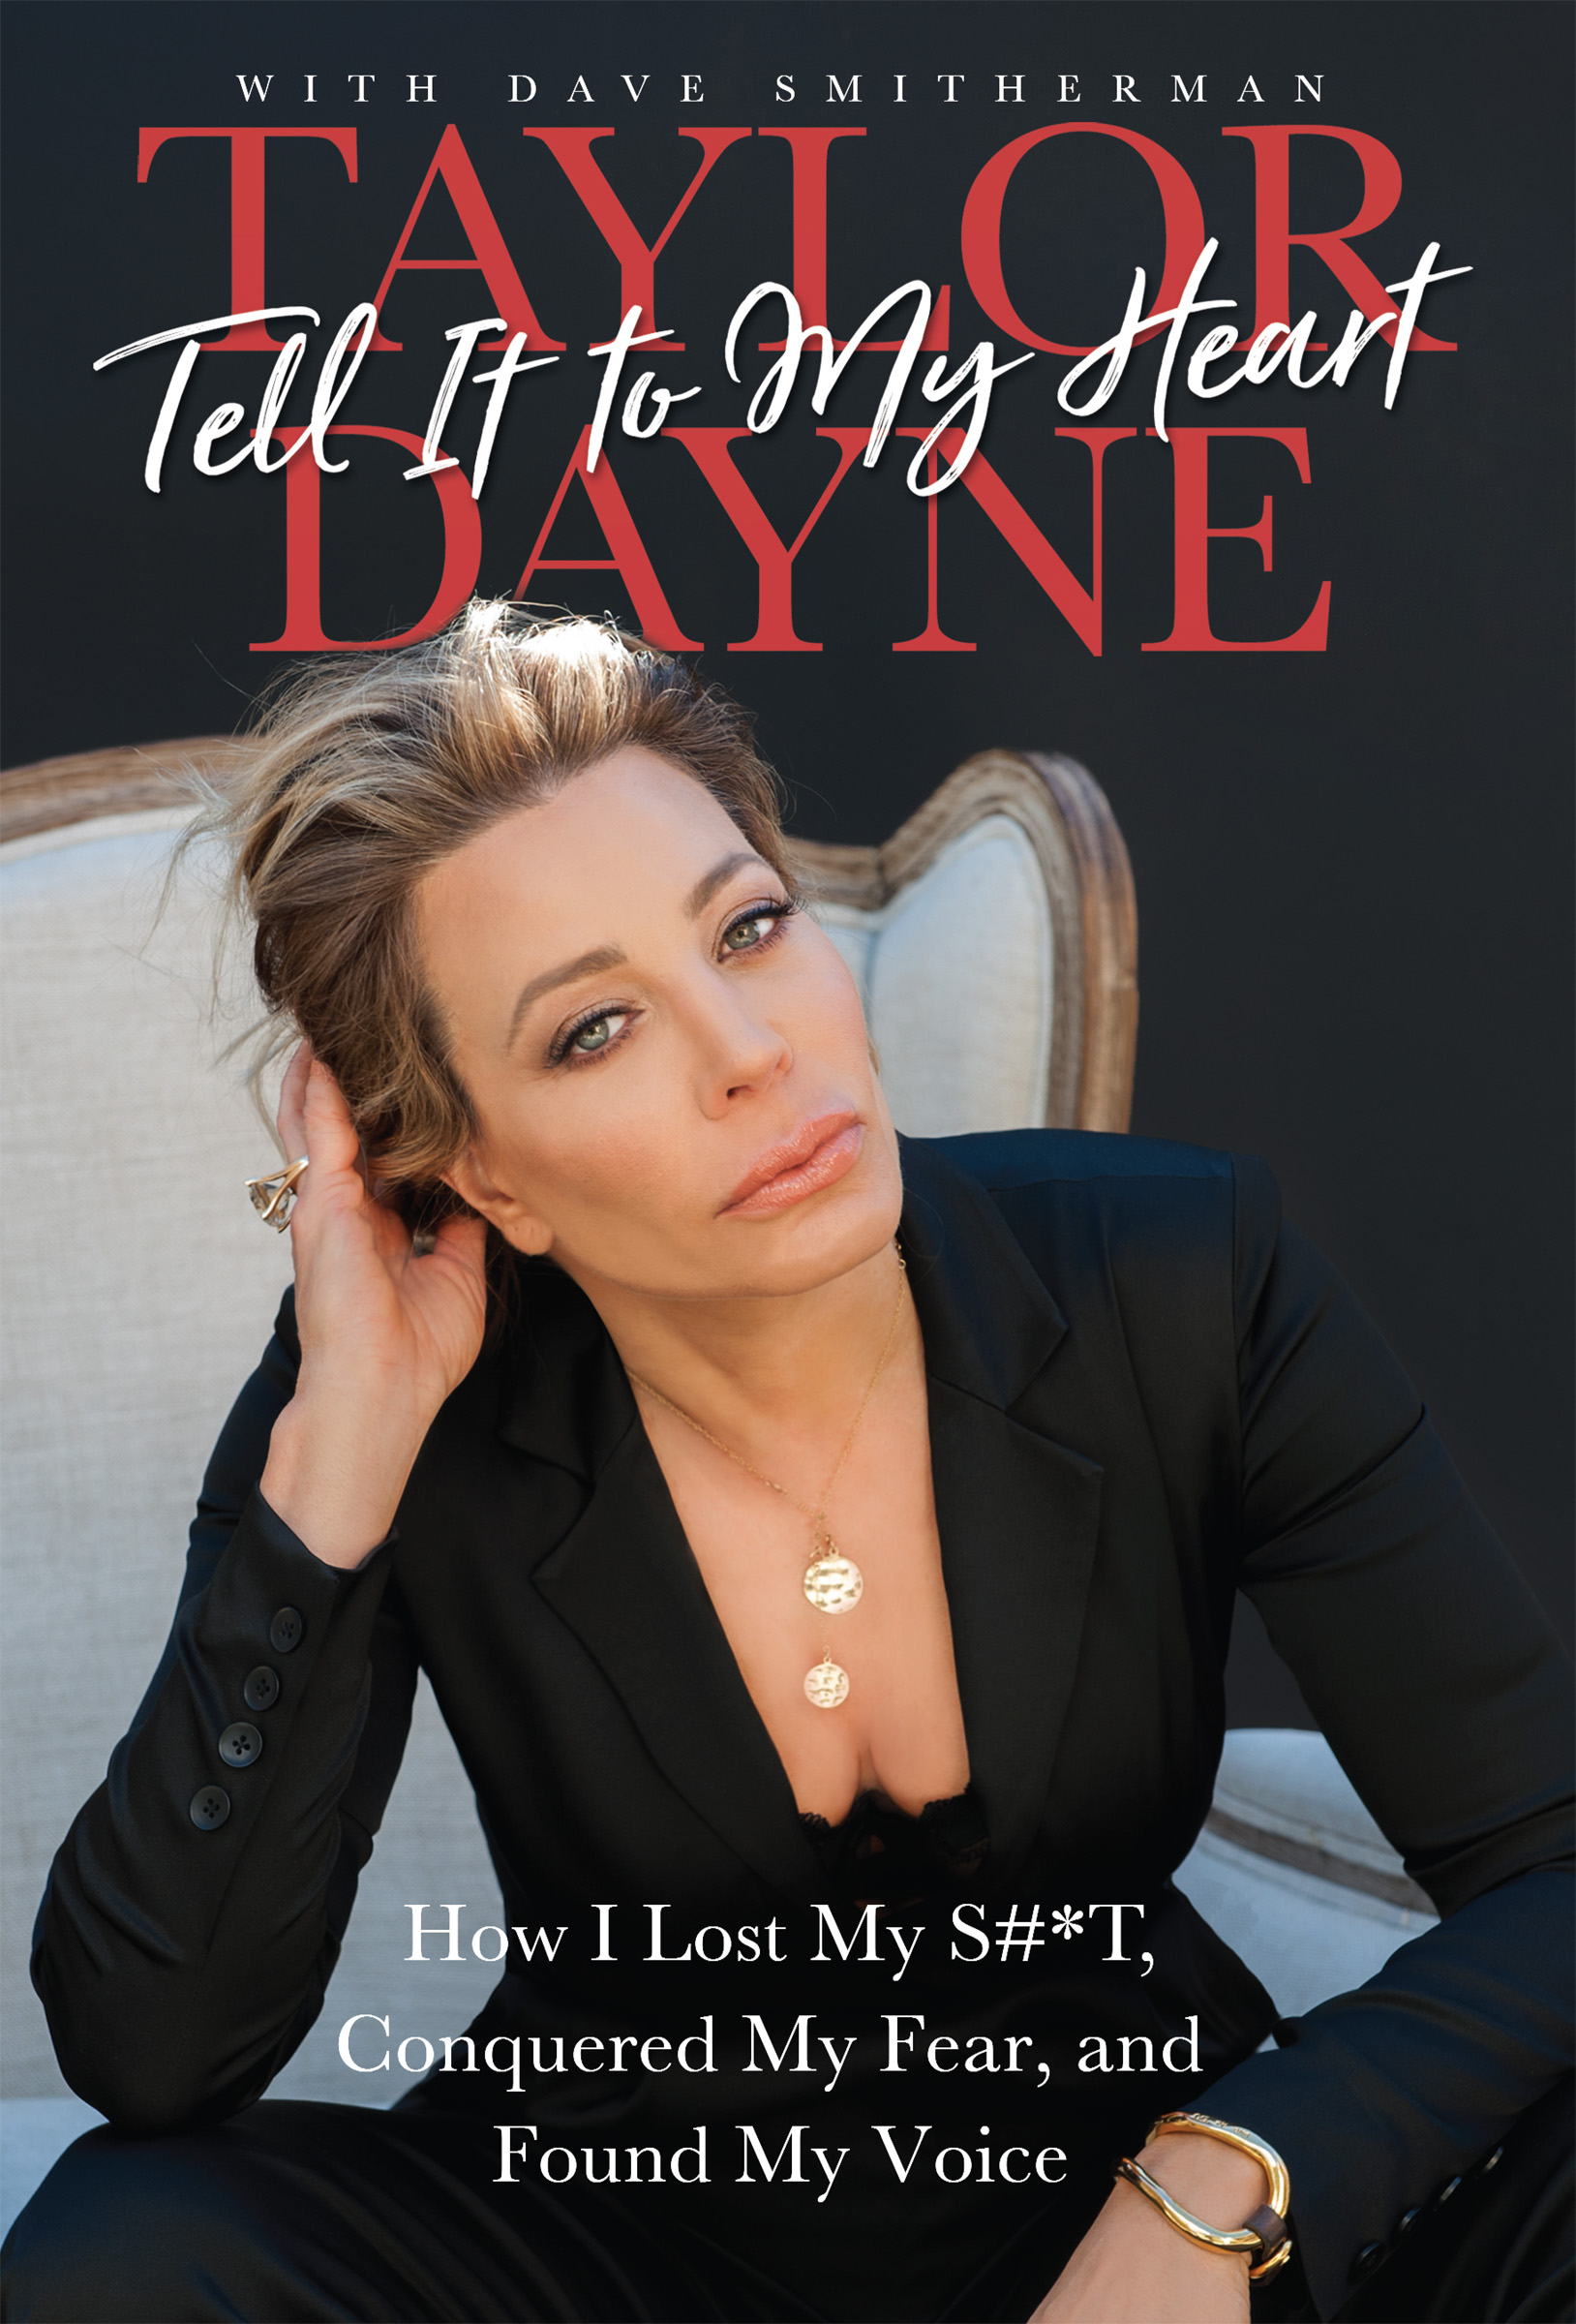 Tell It To My Heart by Taylor Dayne with Dave Smitherman